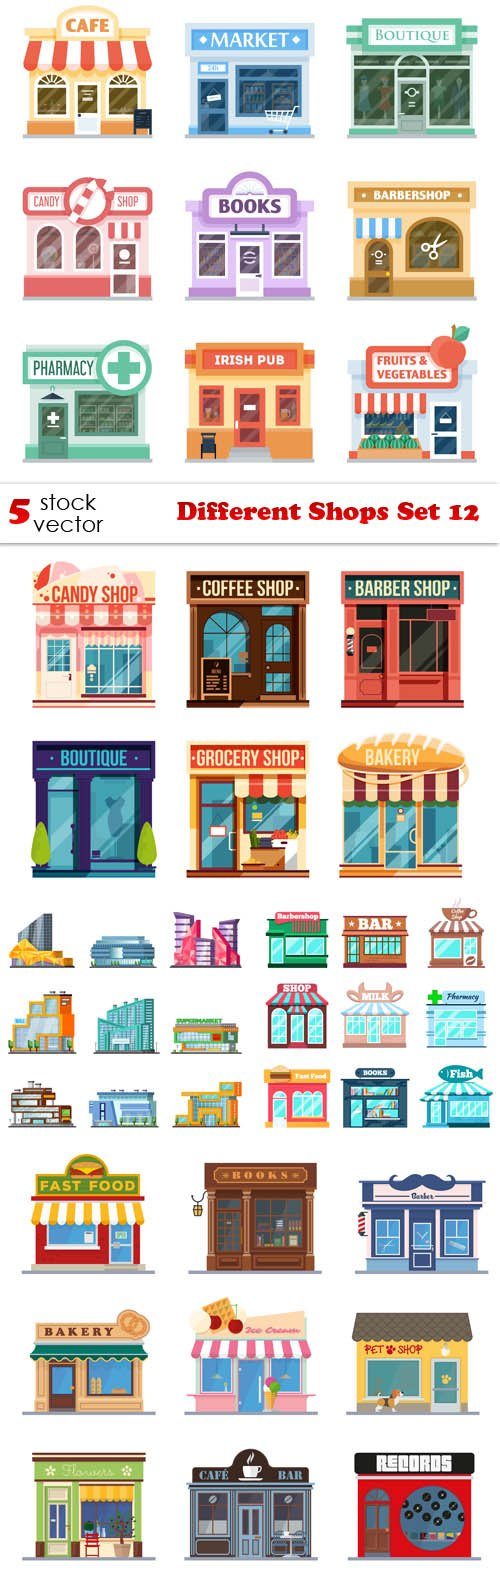 Vectors - Different Shops Set 12